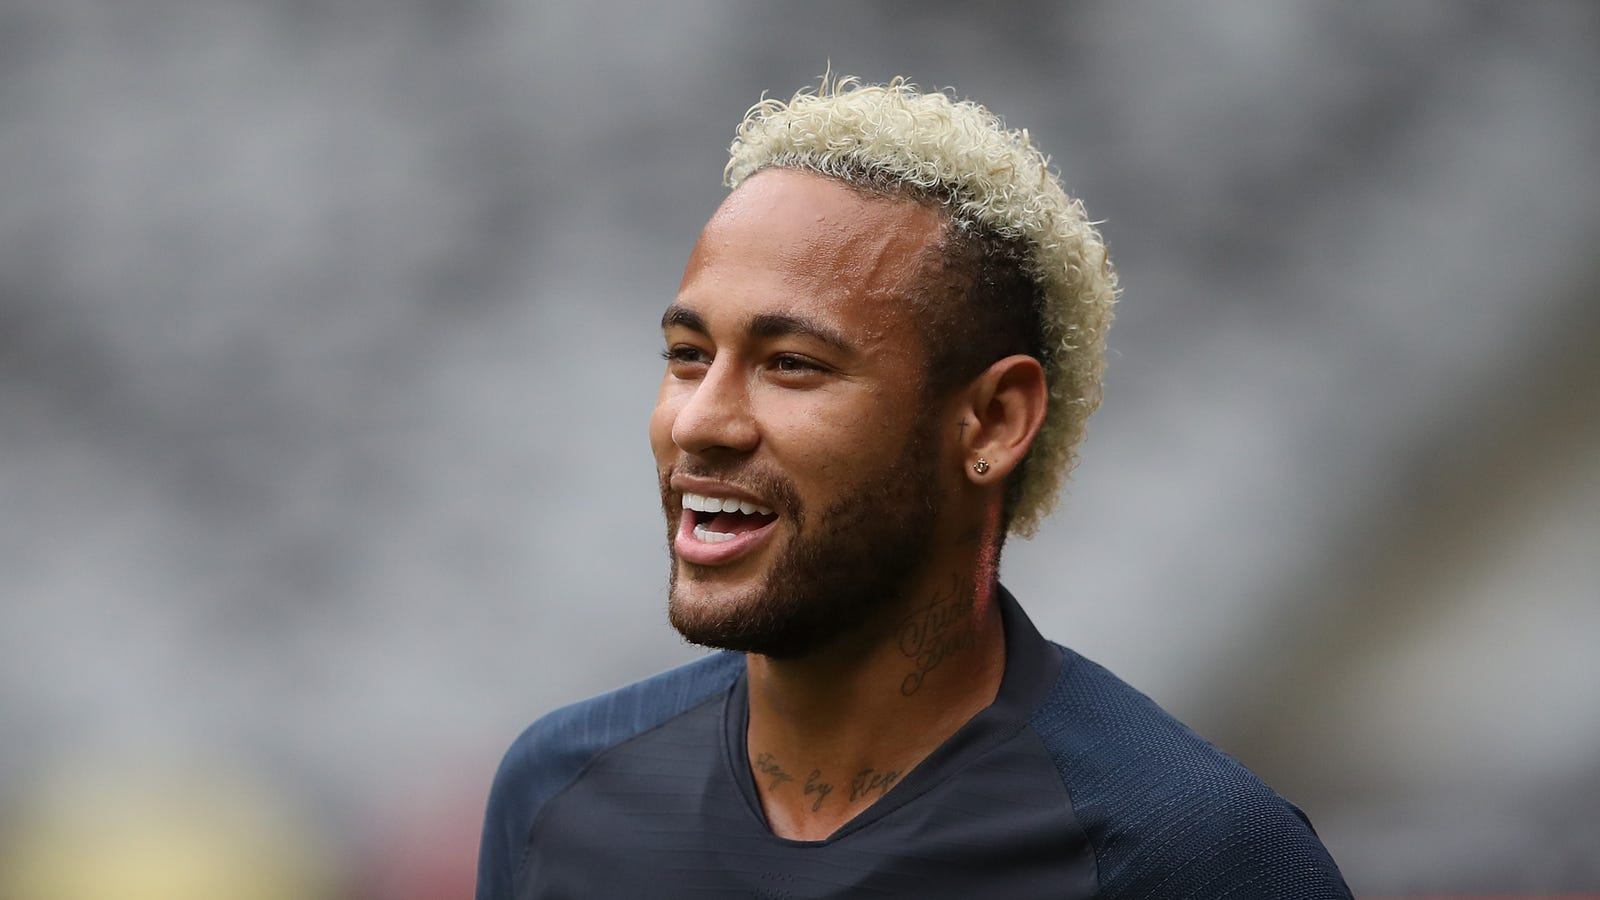 Barcelona, Real Madrid, And PSG Are In A Three-Way Standoff Over Neymar's Future